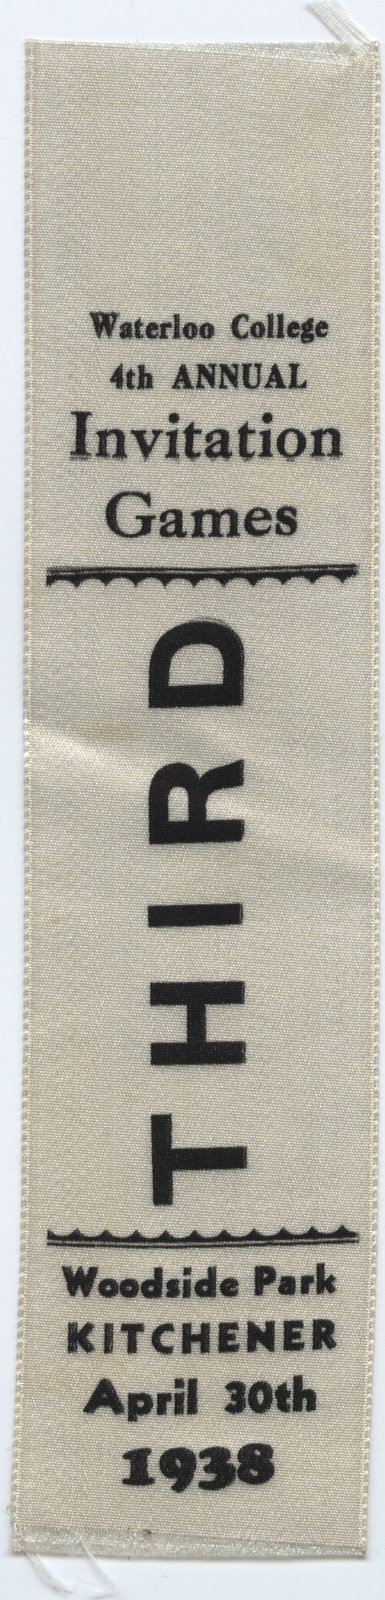 Third place ribbon, 1938 Waterloo College Invitation Games